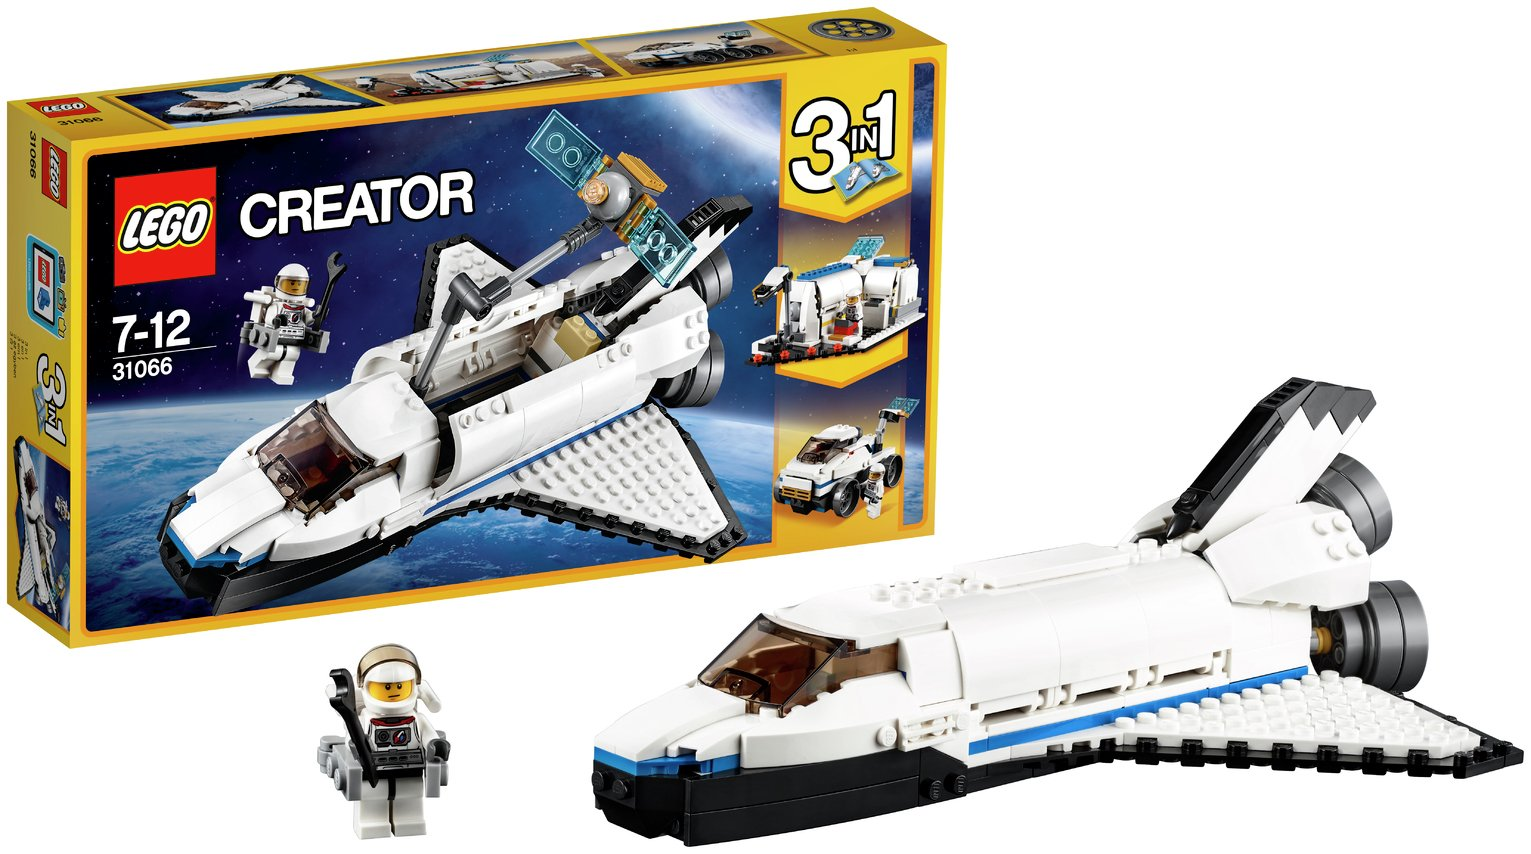 LEGO Creator Space Shuttle Explorer - 31066